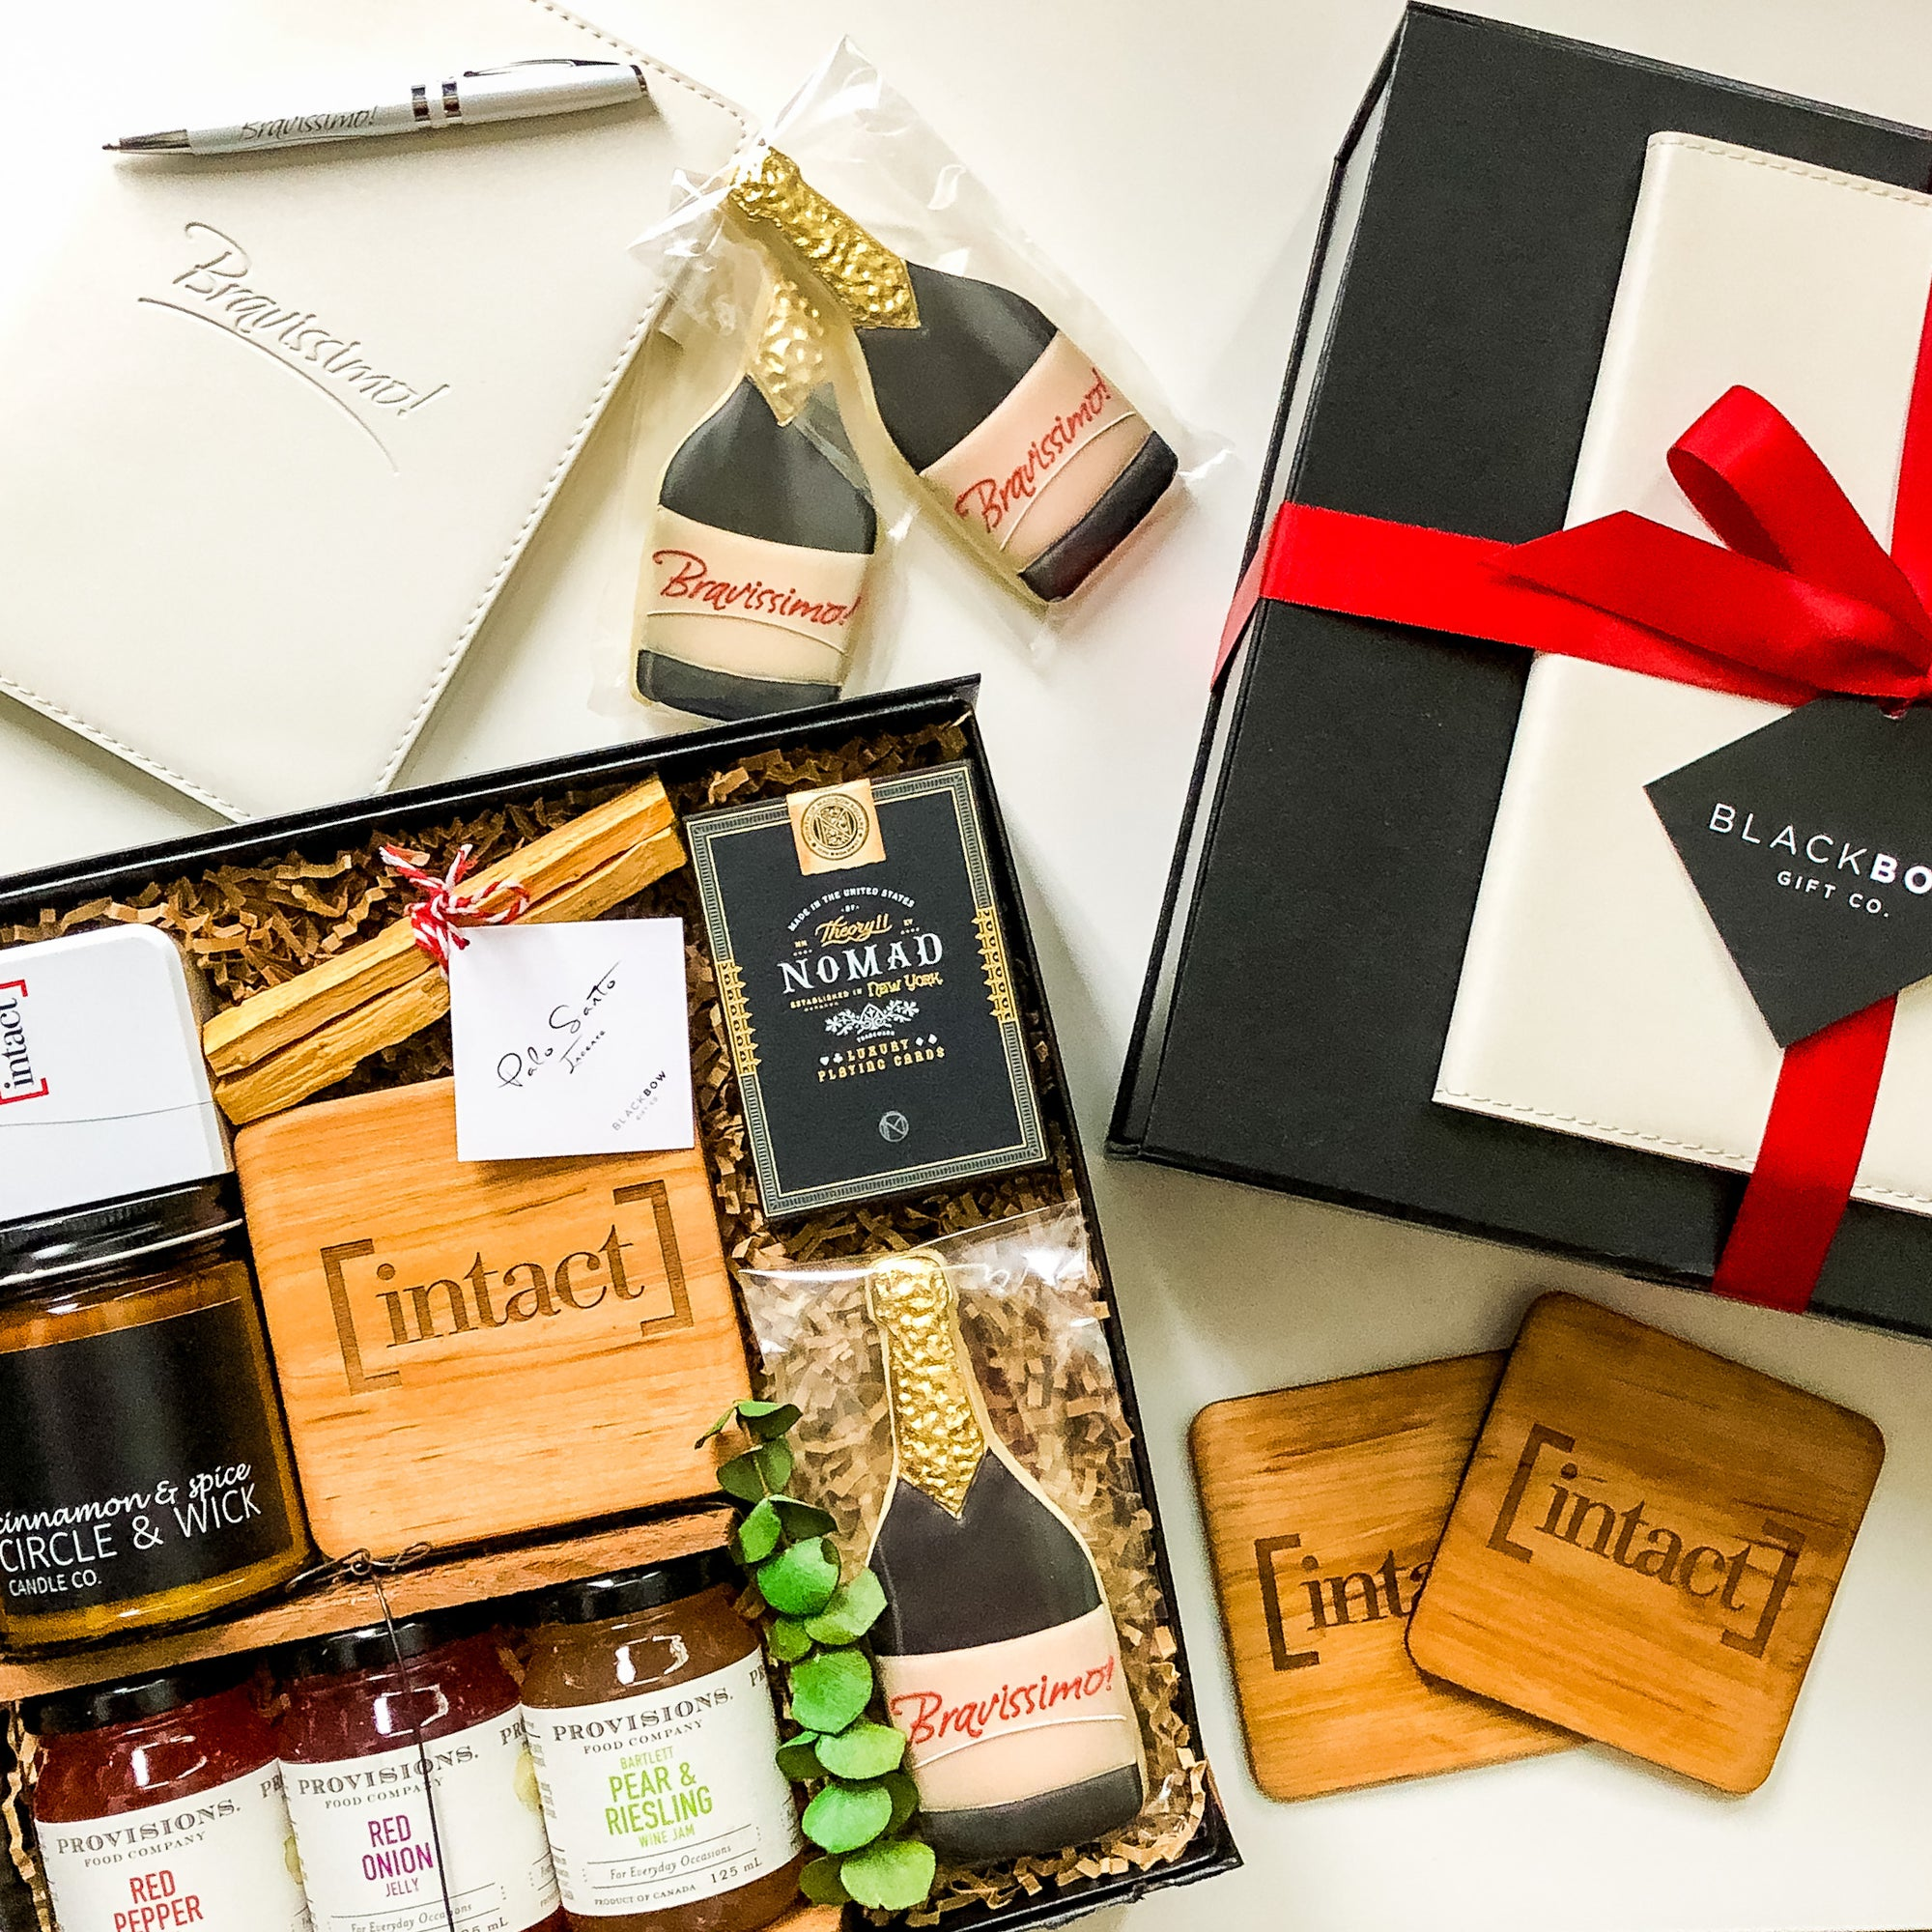 Custom Corporate Gifts, Corporate Gifts, Branded Gifts, Client Appreciation Gifts, Halifax Corporate Gifts, Client Appreciation Gifts, Client Gift Baskets, Custom Branded Gifts, Custom Gifts, Corporate Gift Baskets, Virtual Meeting Gifts, Gifting Services